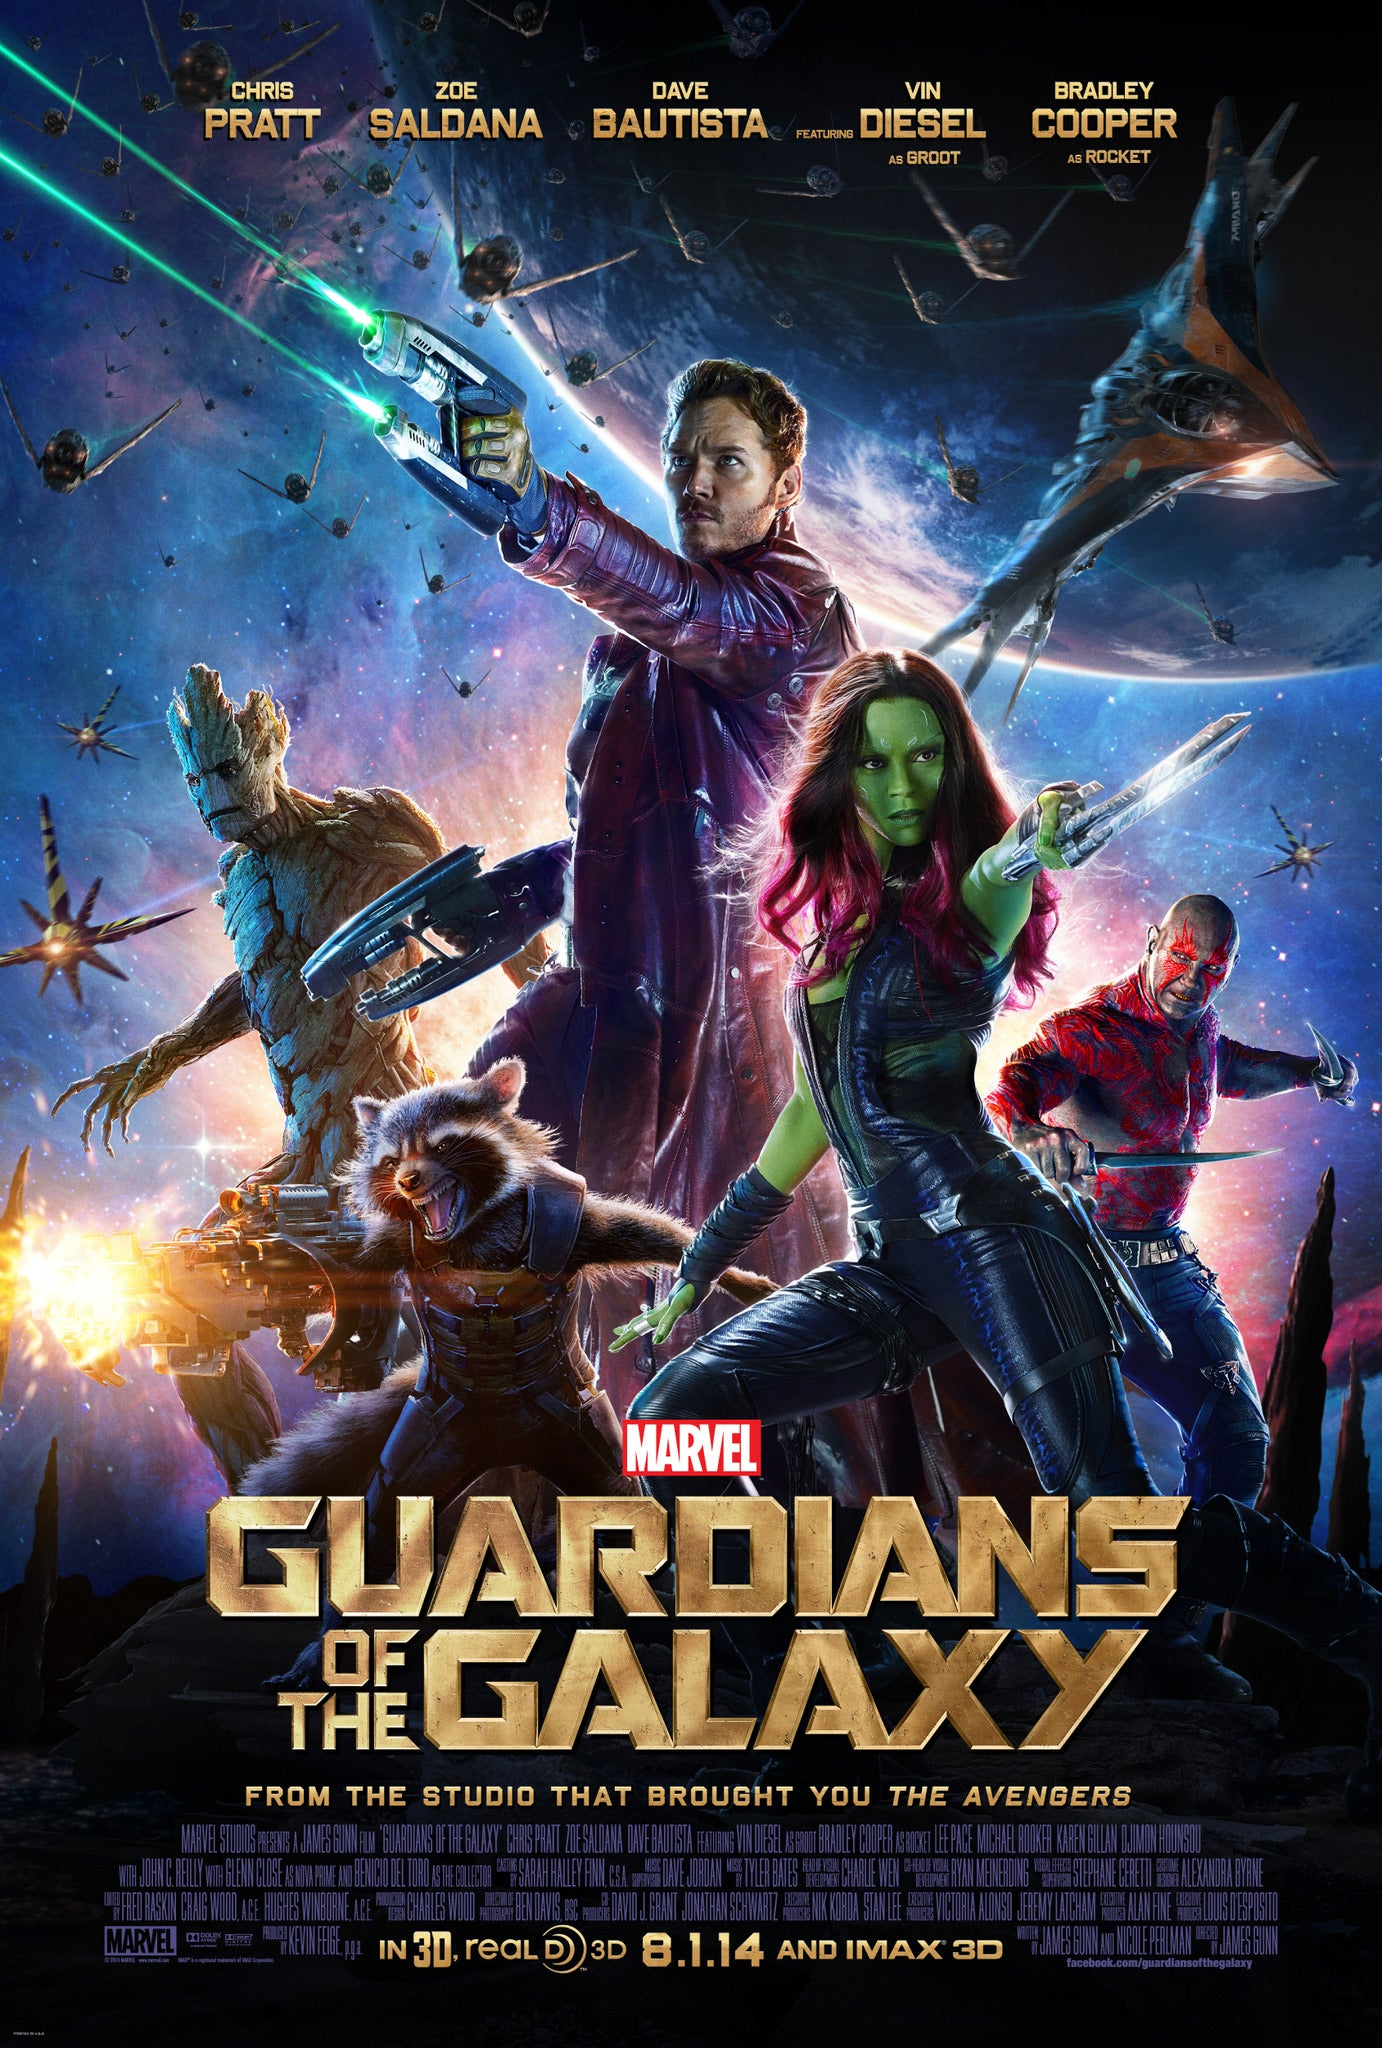 Guardians of the Galaxy Vol. 1 (2014: Ports Via MA) Google Play HD code